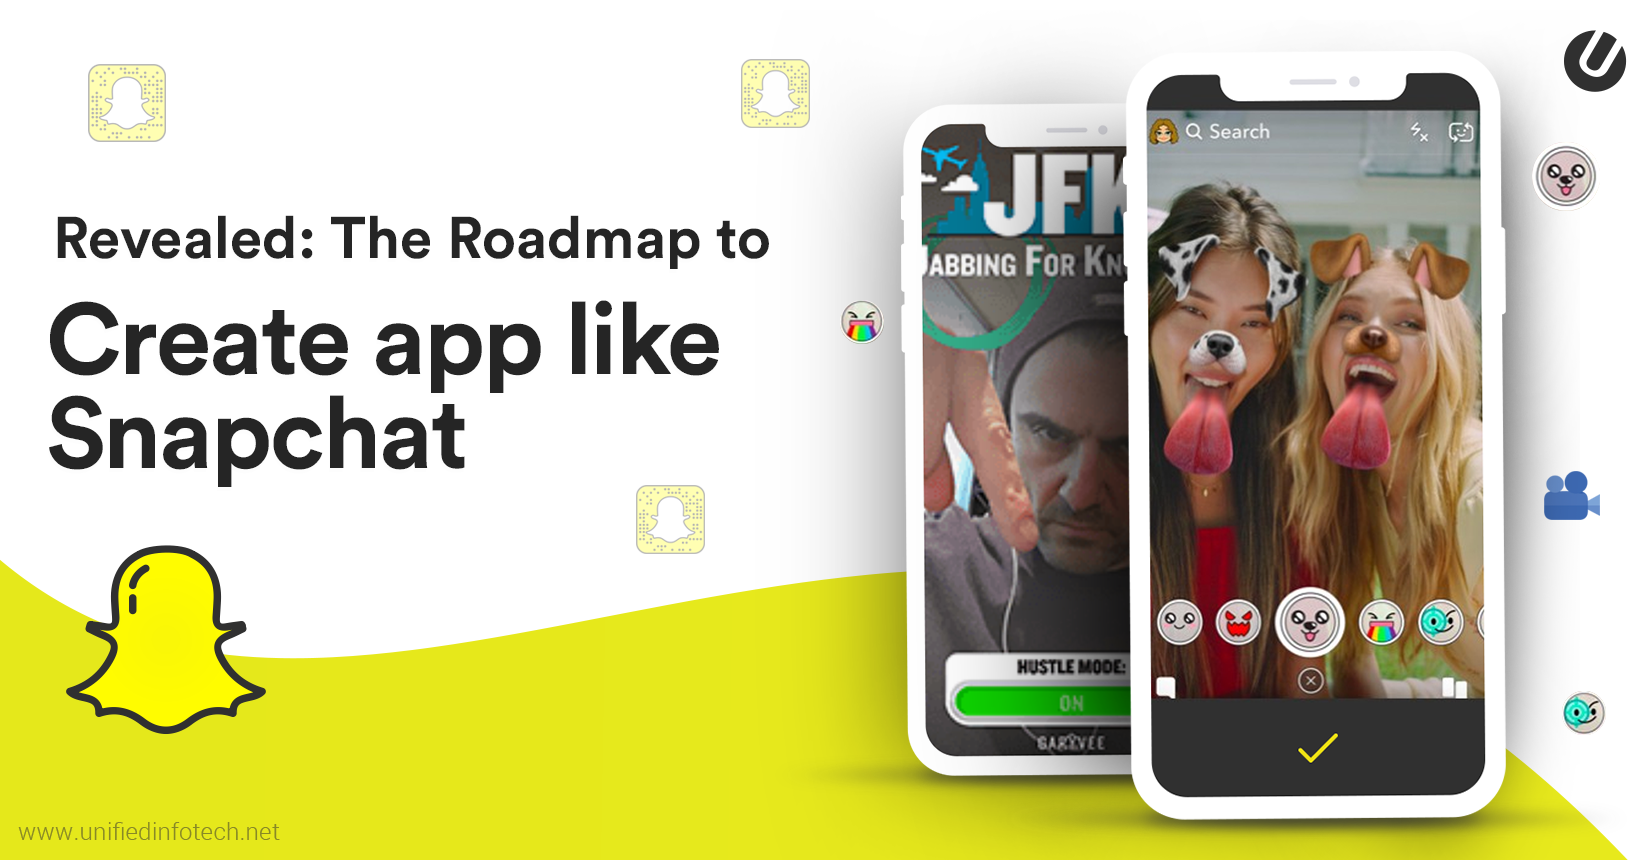 An App Like Snapchat: How Are You Going To Make One?